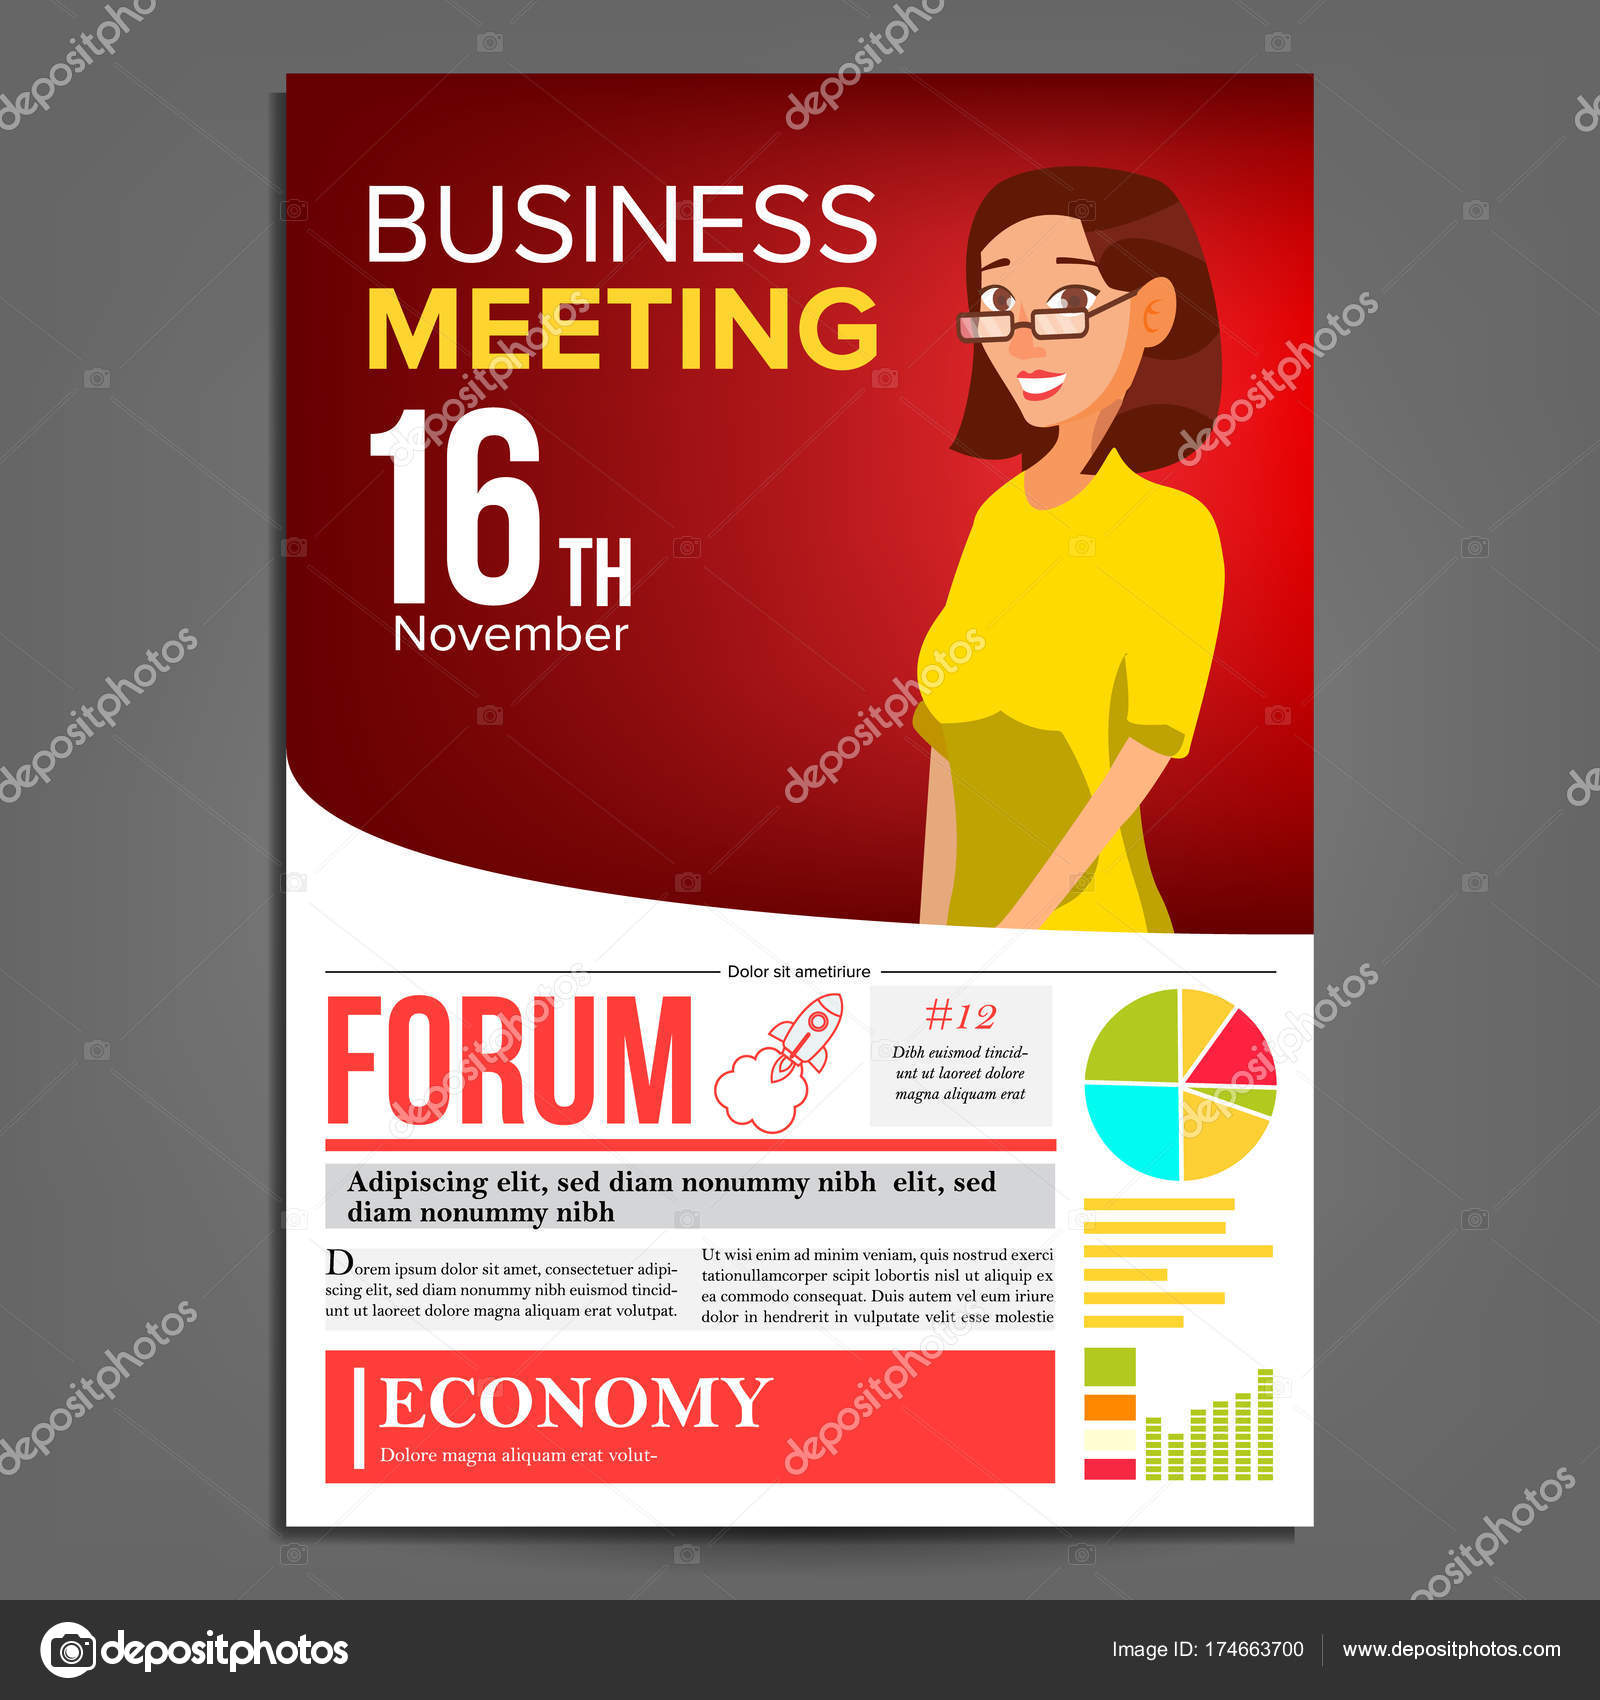 Business meeting poster vector business woman layout presentation business meeting poster vector business woman invitation and date conference template a4 size red yellow cover annual report conference room stopboris Image collections